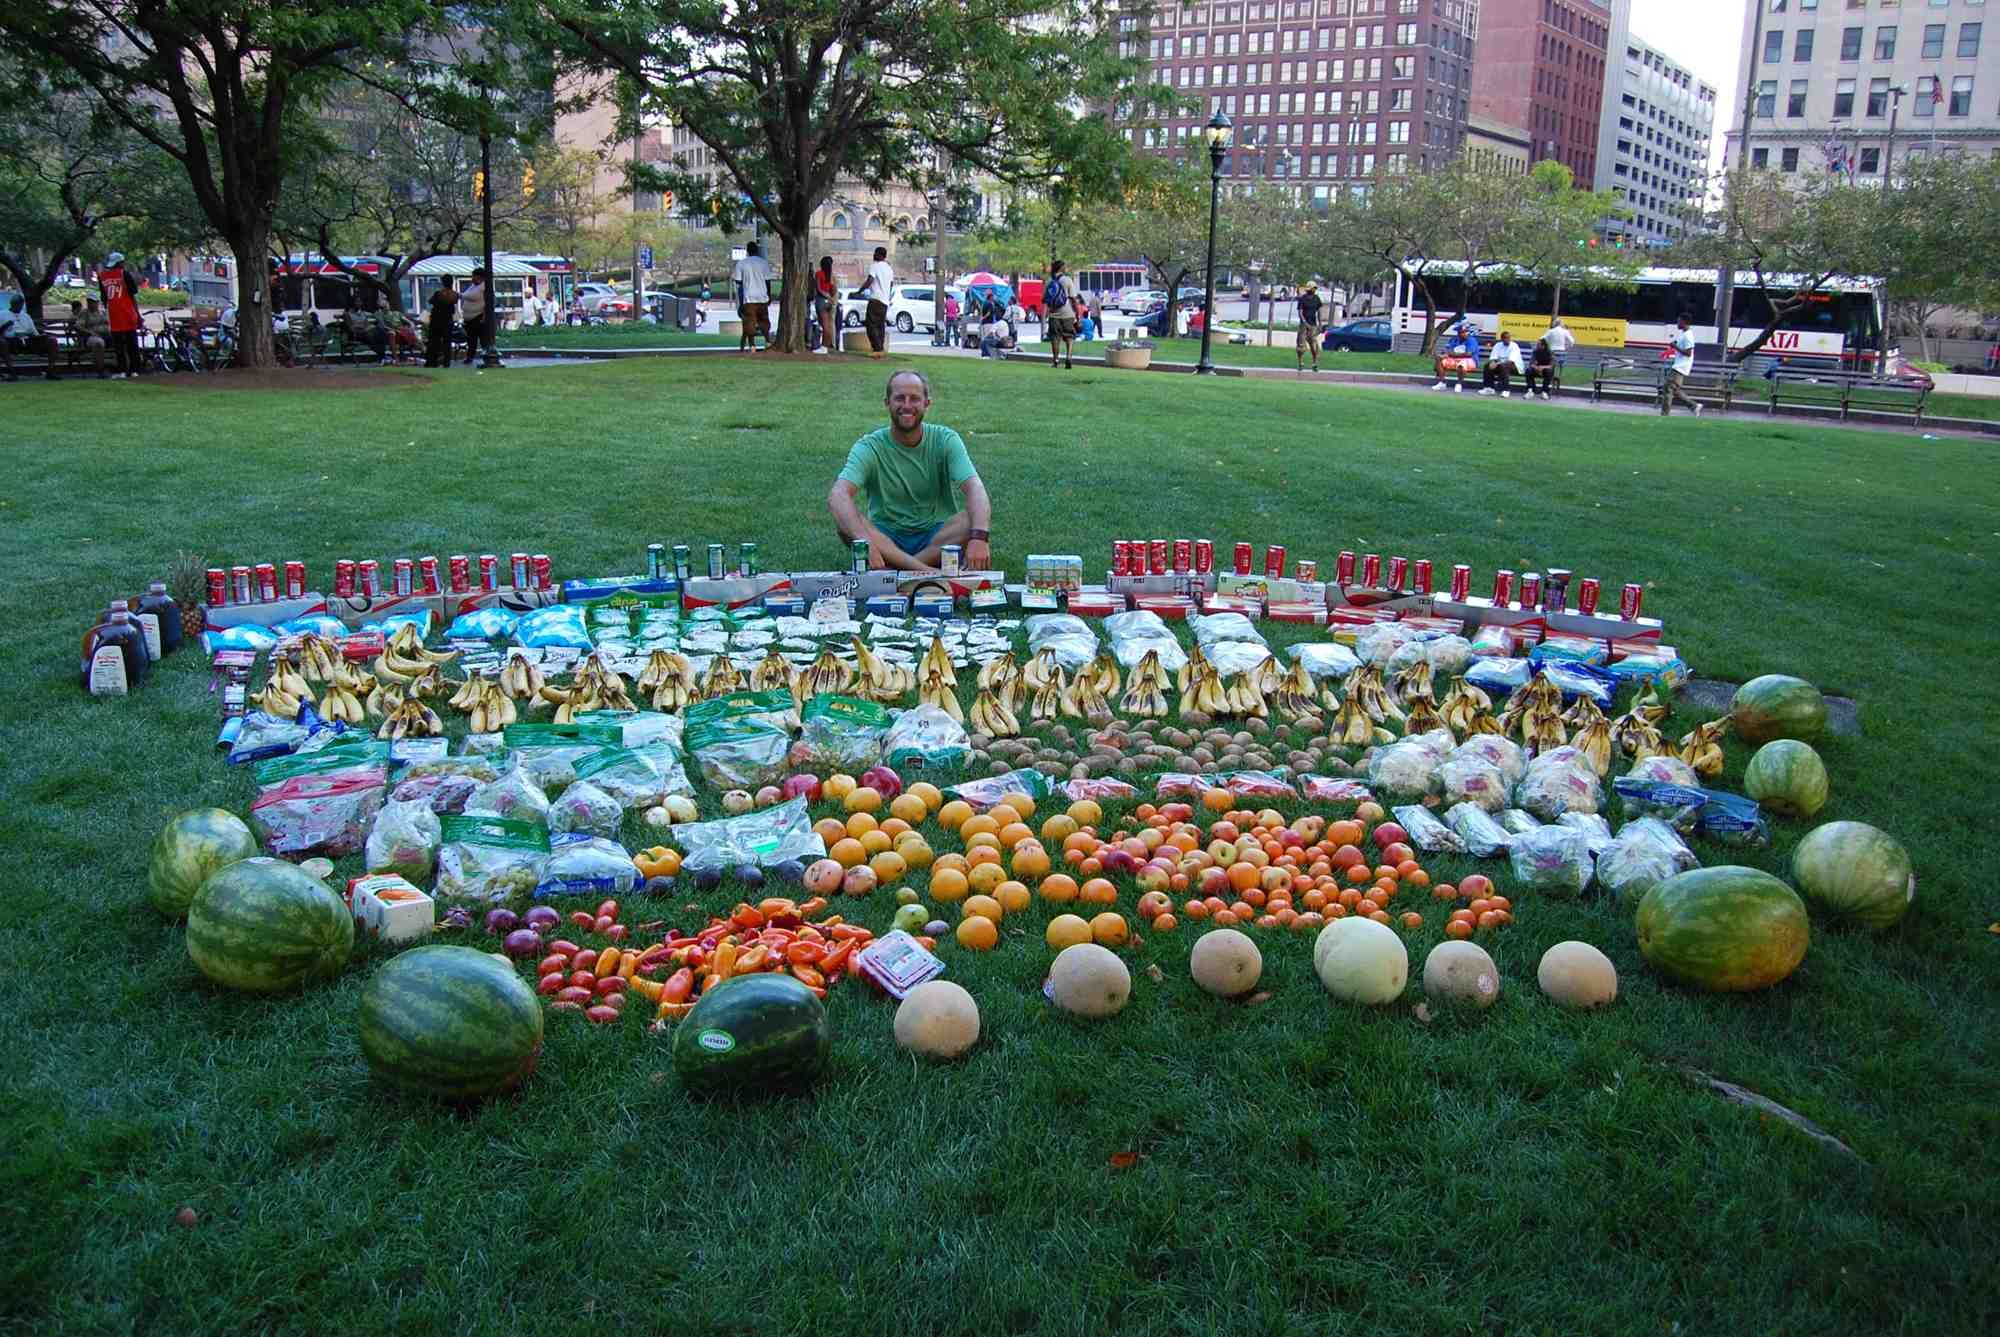 Food Waste in Cleveland, Ohio